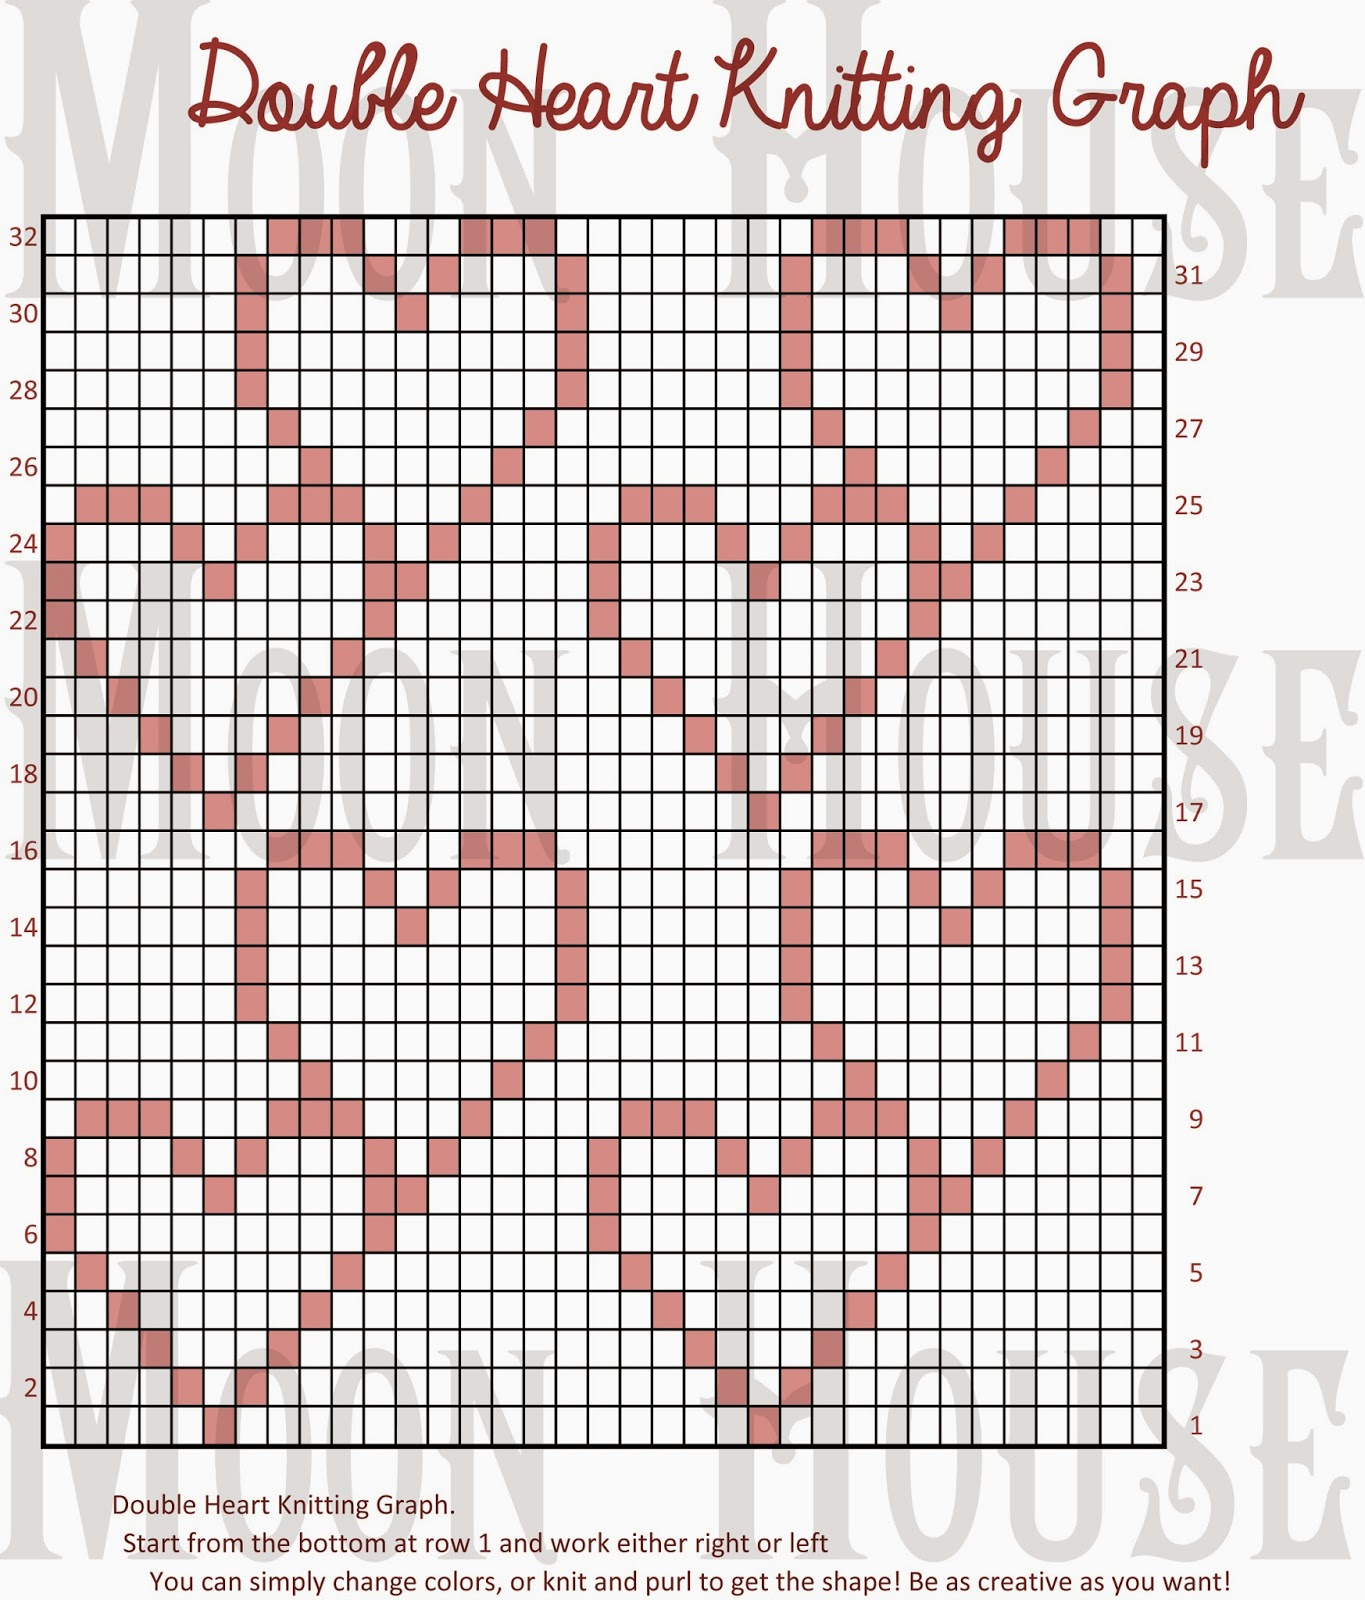 Moon House Double Heart Knitting Graph